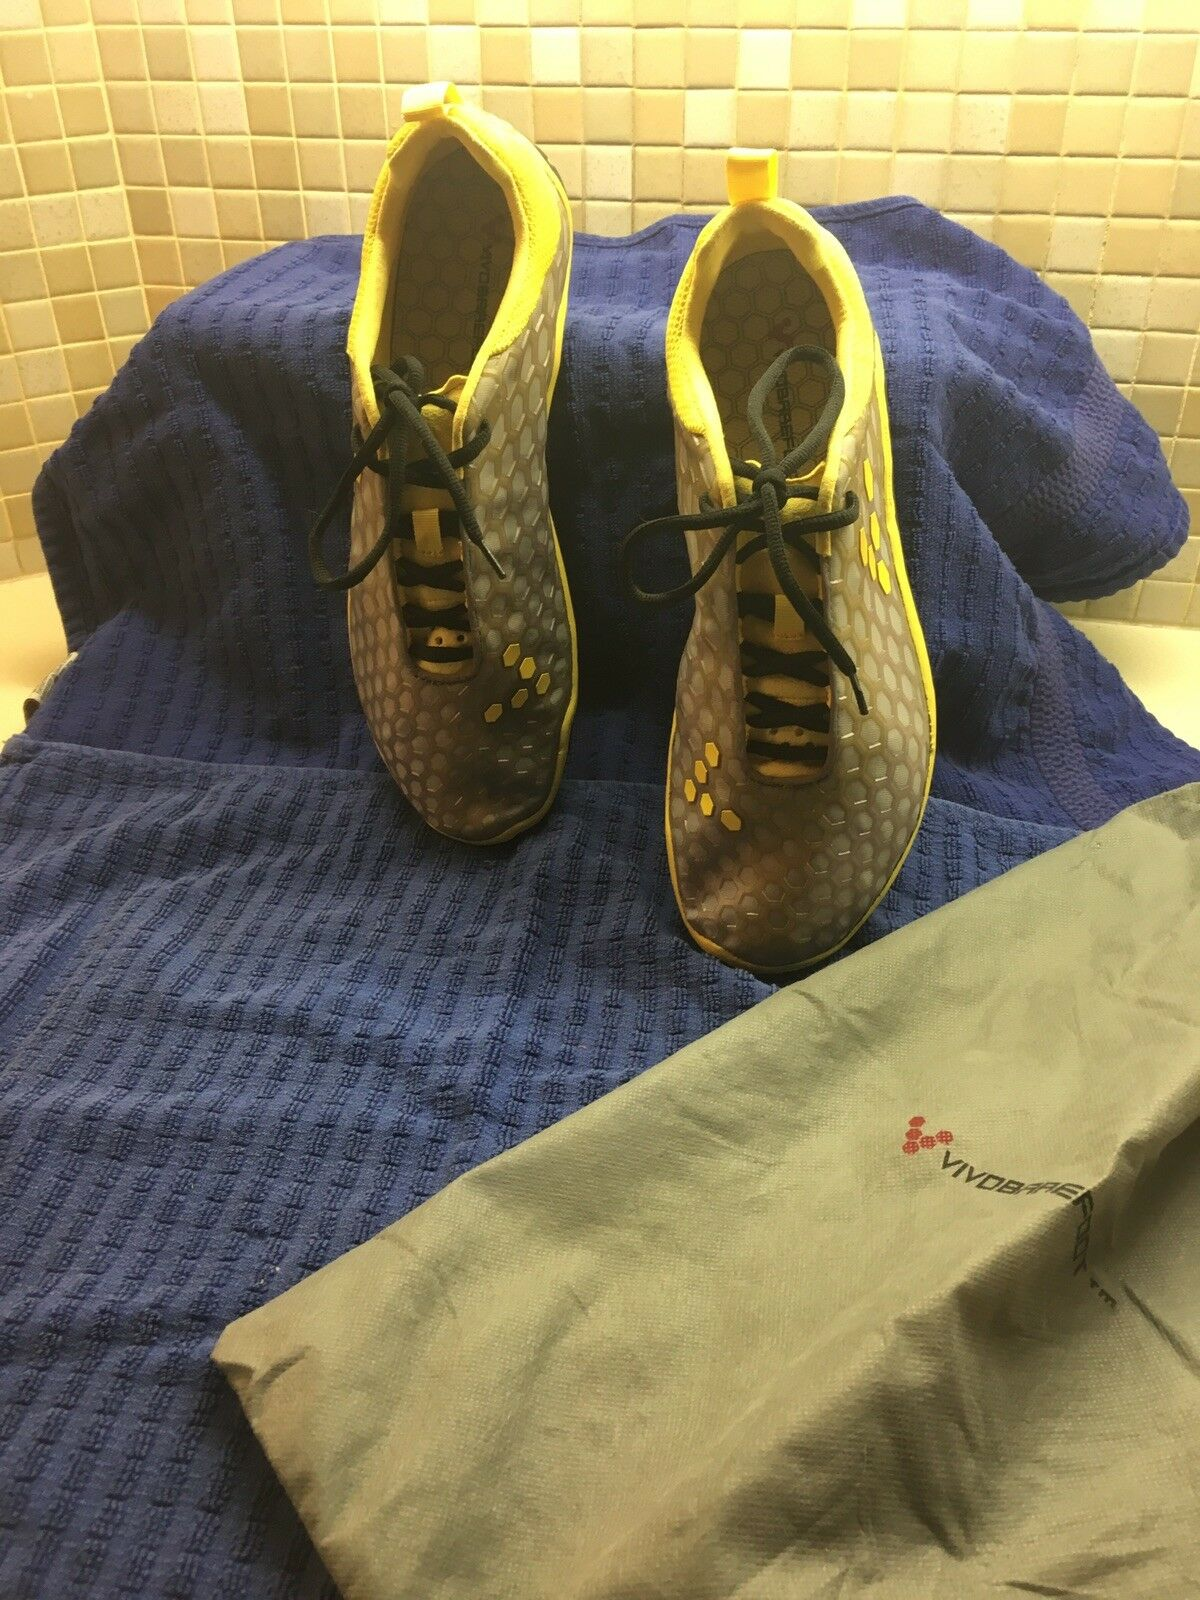 New VitobareFoot Mens Terra Pang Exercise Running/Trail Shoes. m. Shoe bags